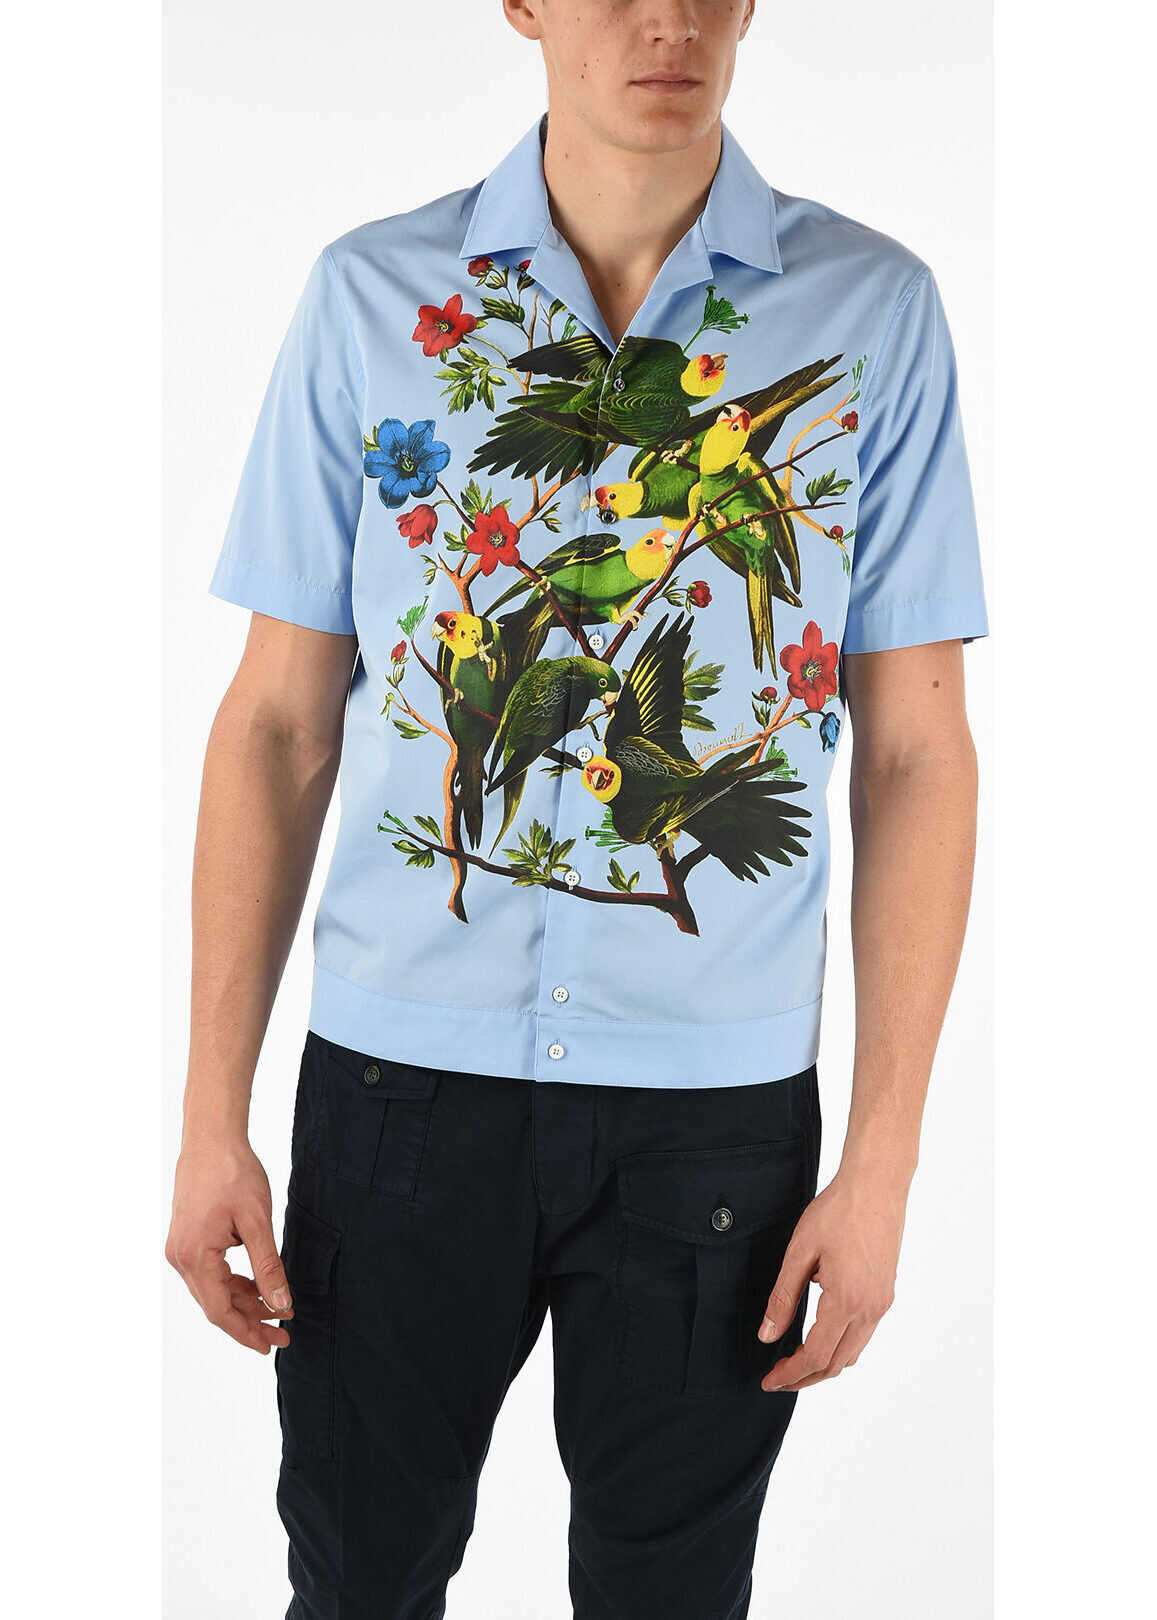 DSQUARED2 Short Sleeve Shirt with Parrot Print BLUE